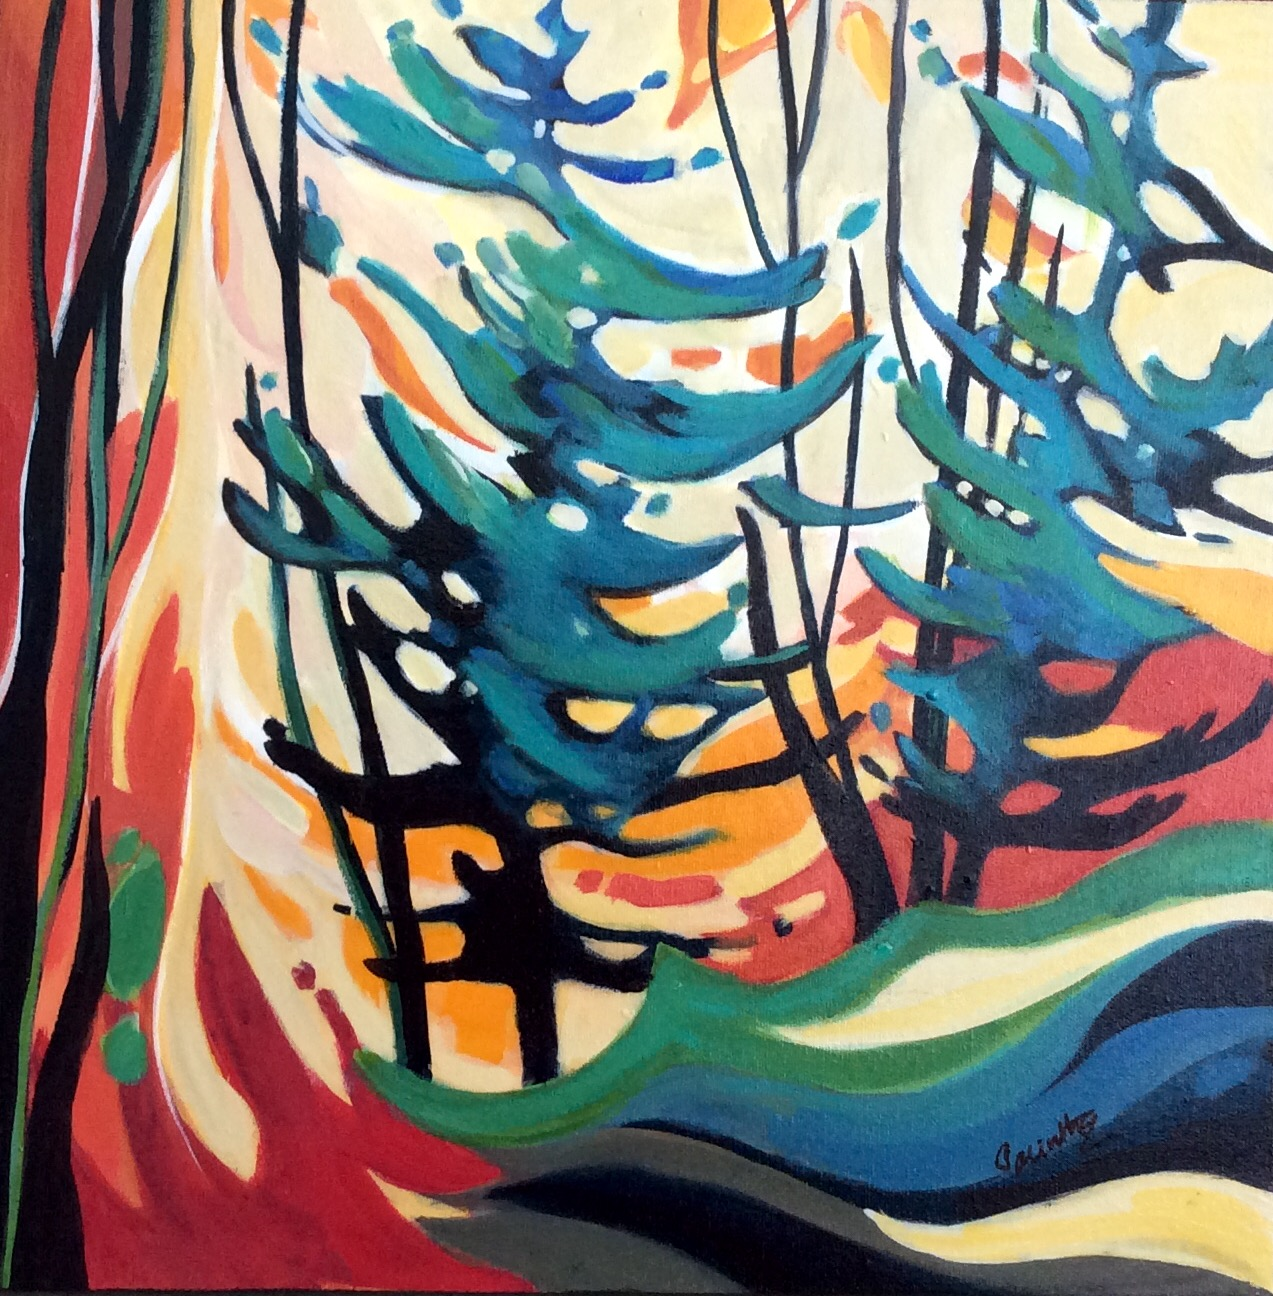 SOLD - DANCE OF THE TREES - 2